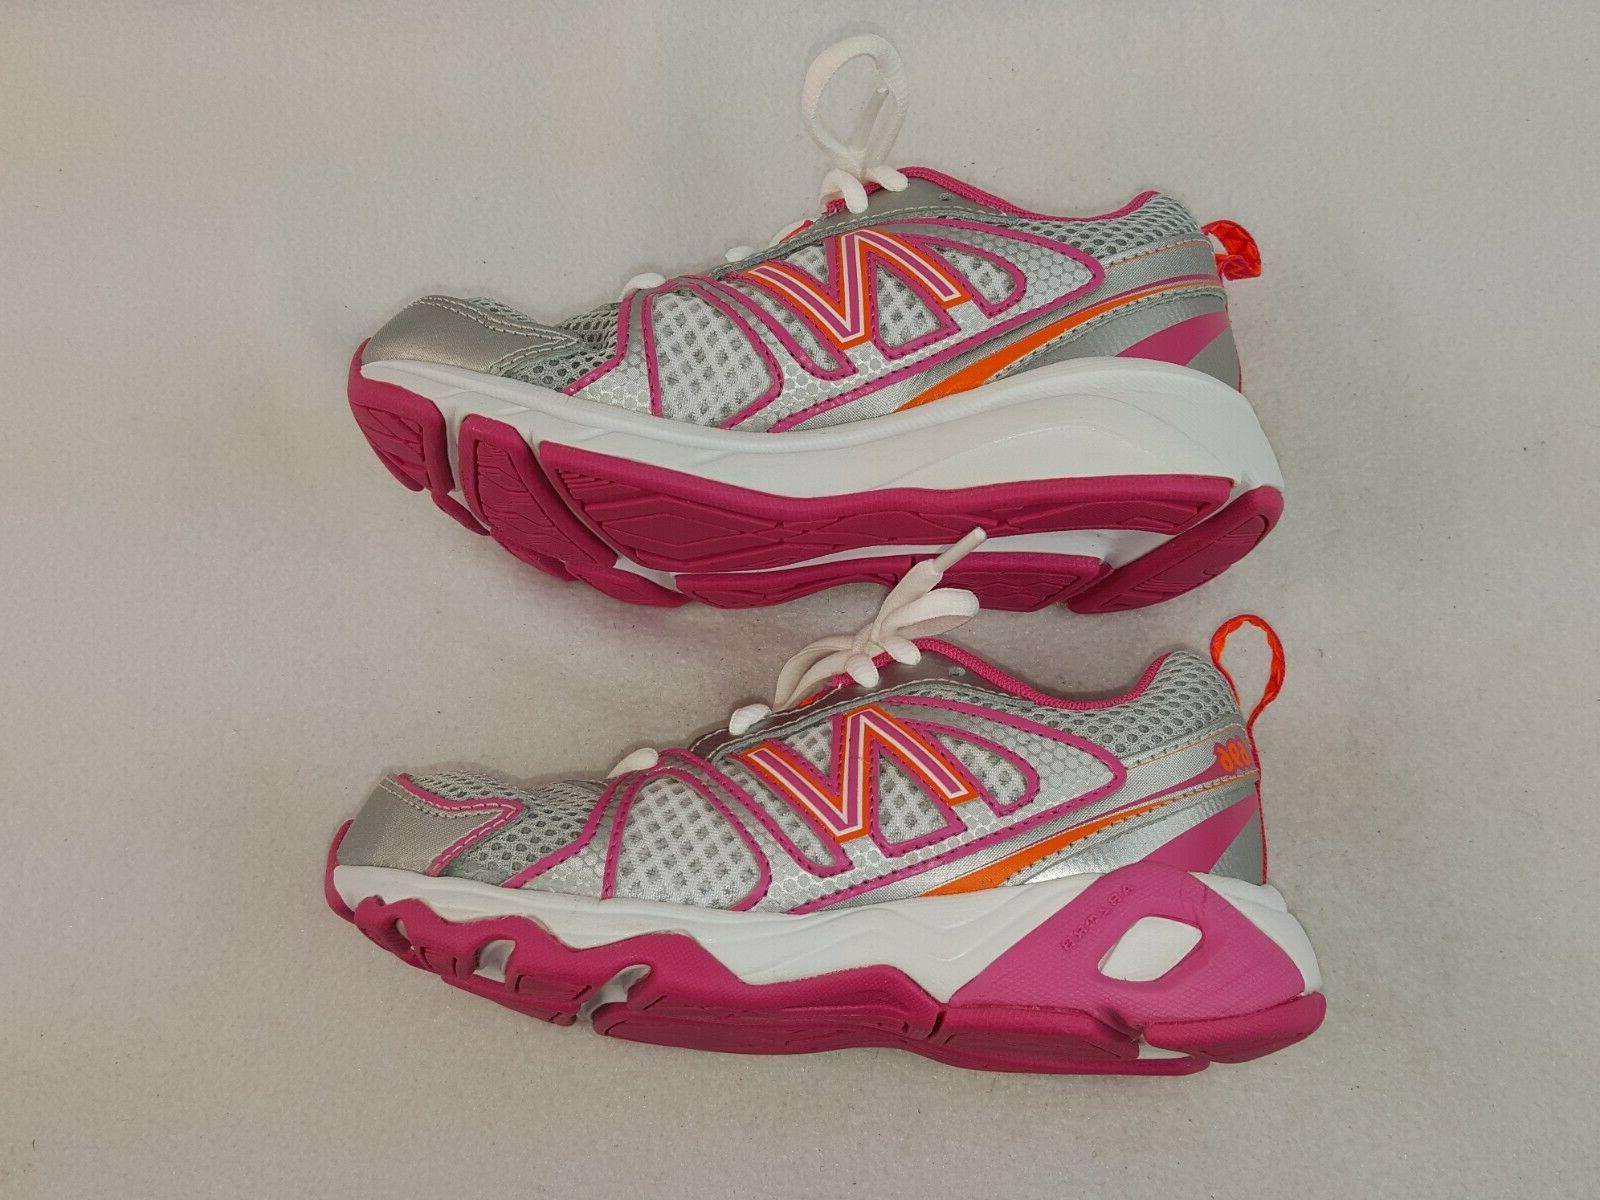 New Balance Kids Wide, Silver/Pink Sneakers